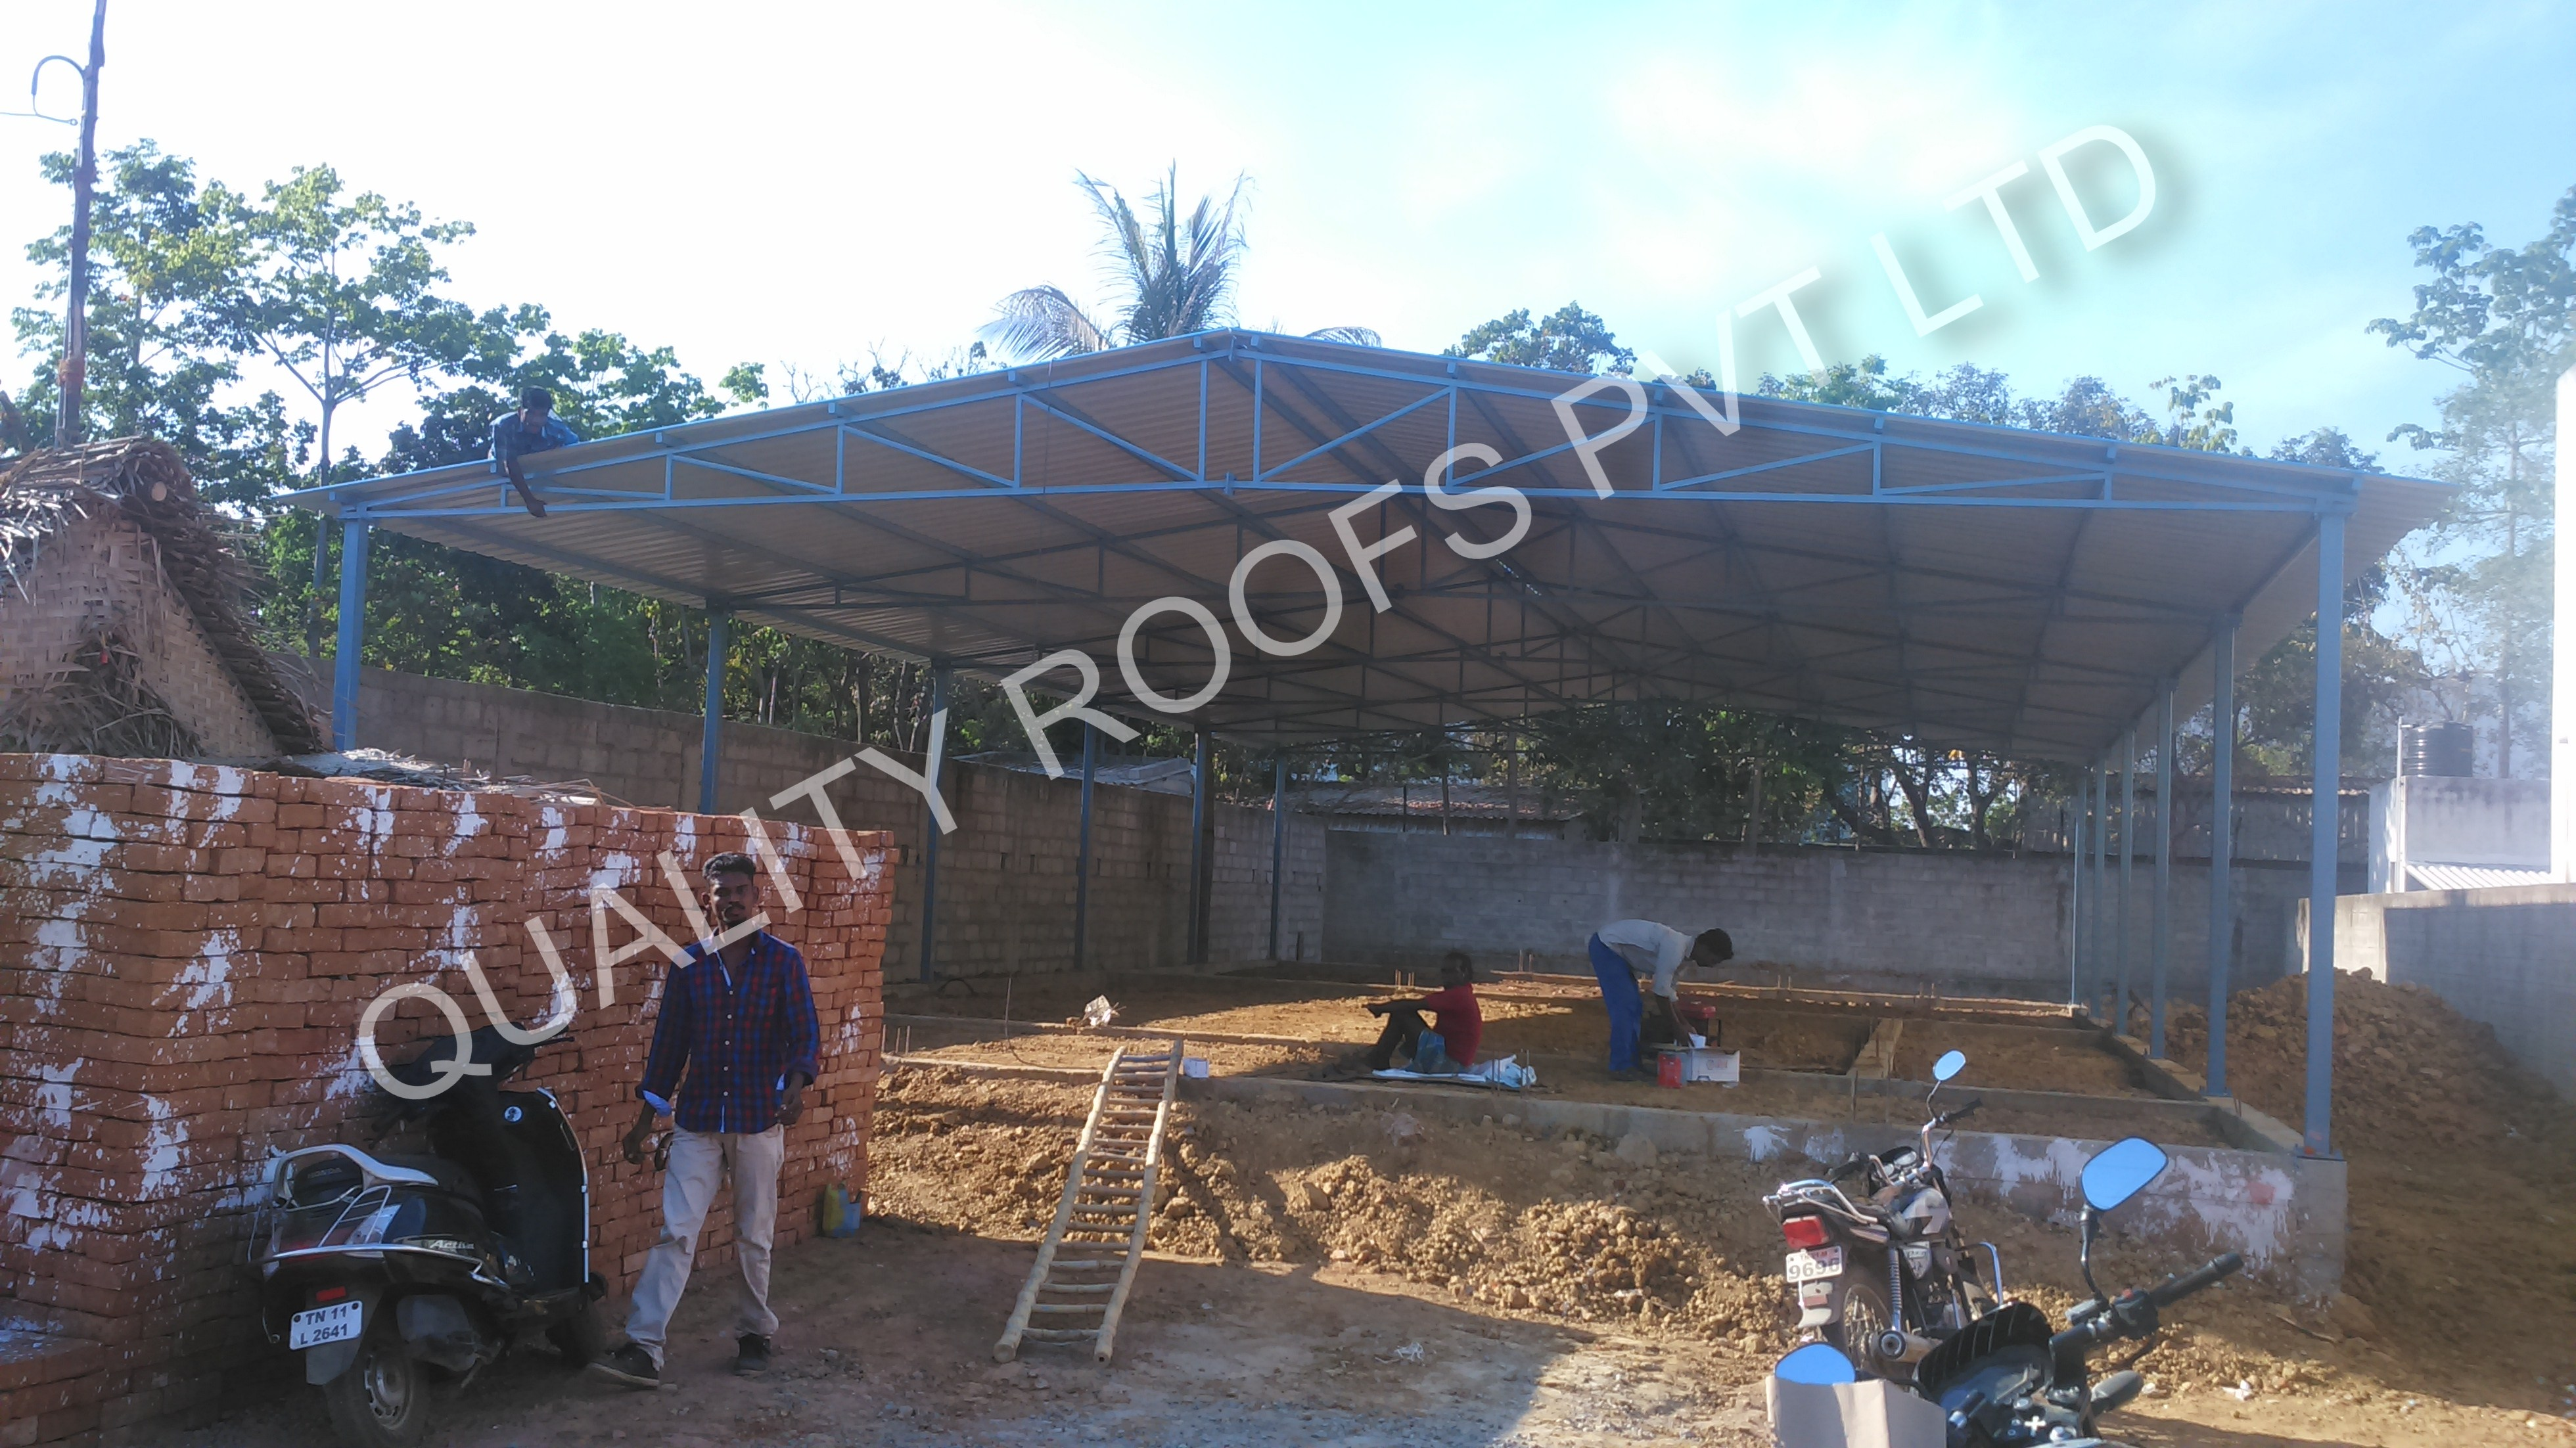 We are specialized for Industrial Roofing Contractors, Metal Roofing Contractors, Polycarbonate Roofing Contractors and Terrace Roofing Contractors In Tamilnadu, we undertake all kinds of Roofing work and Roofing Sheet supply at very competitive price.